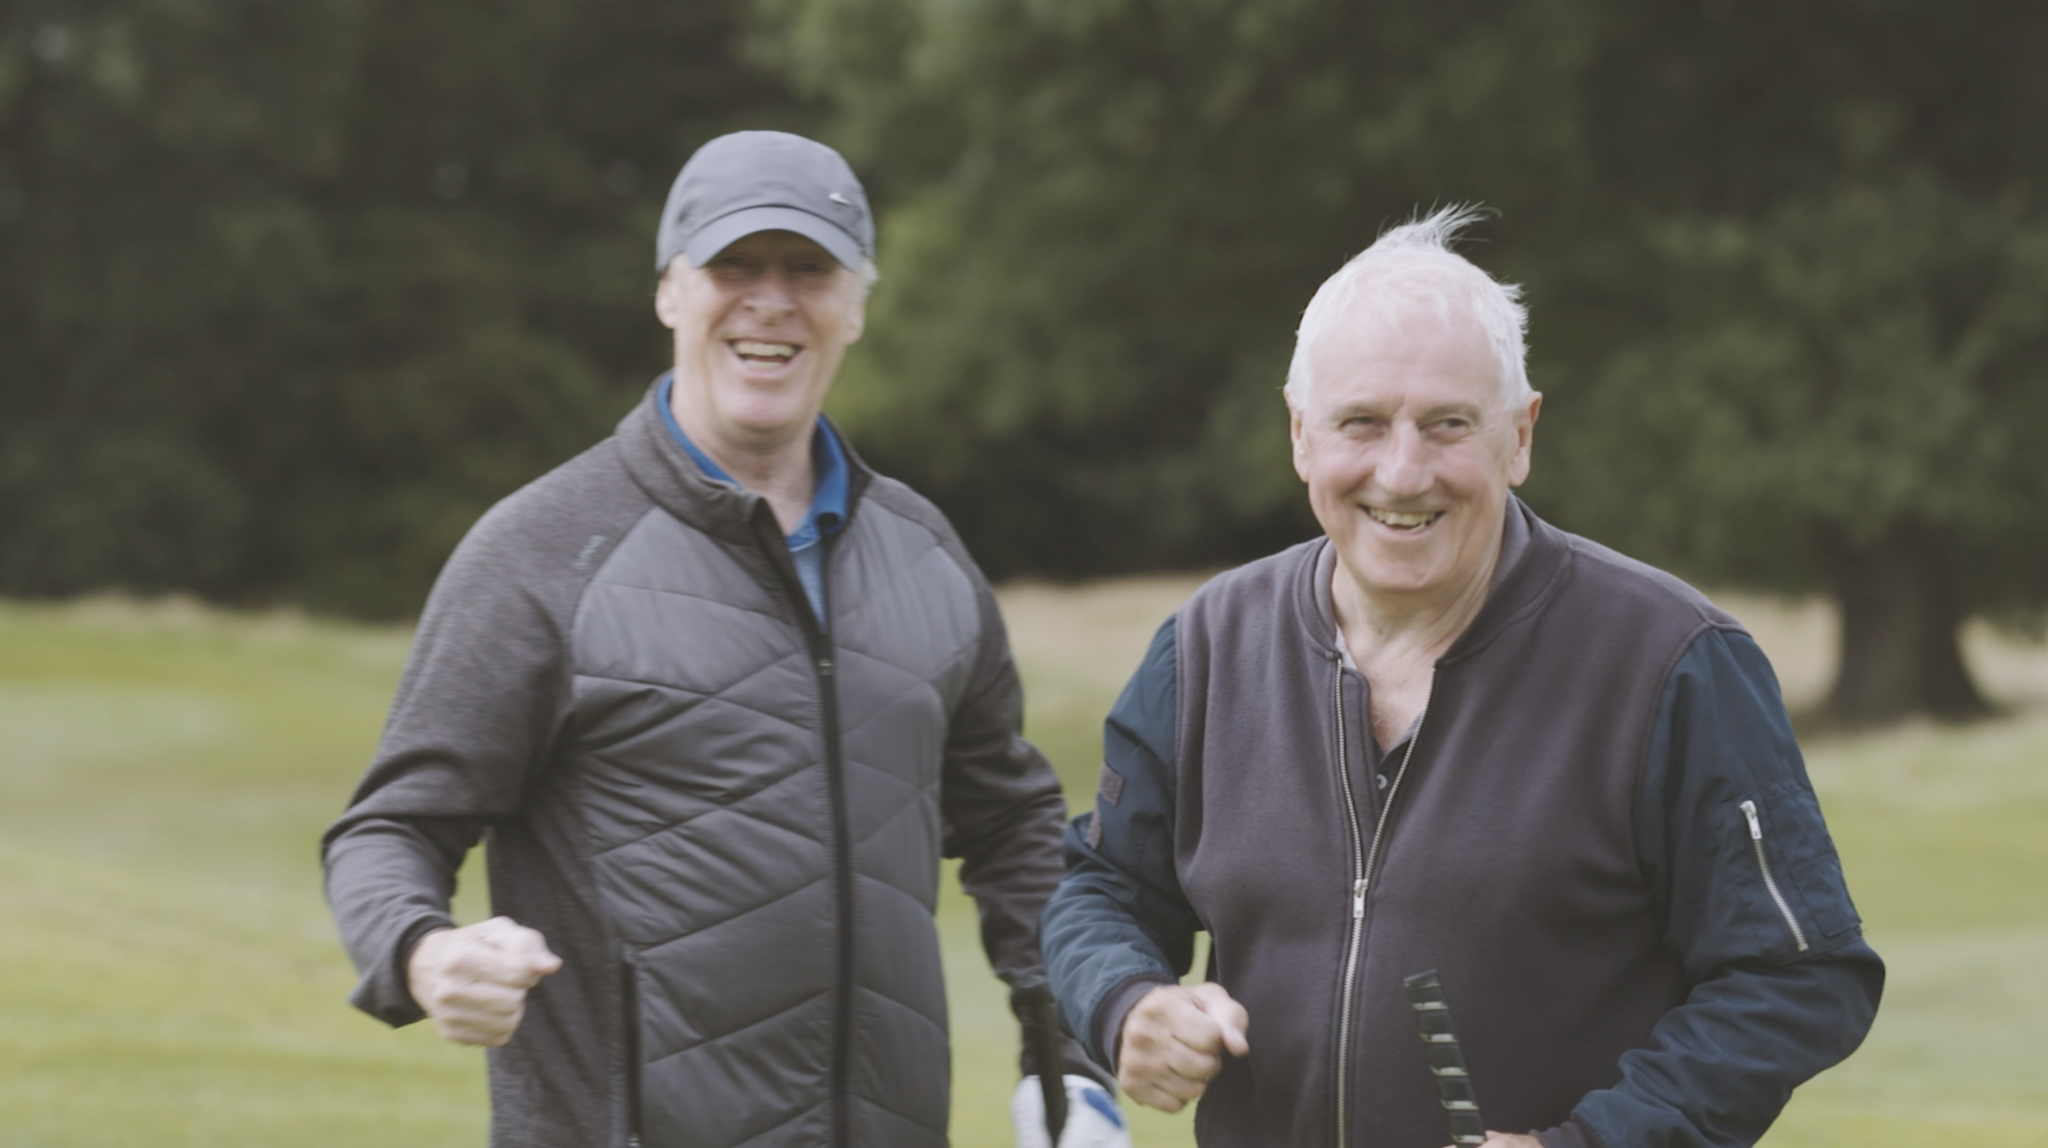 'More than a game' – how golf brings joy to people living with dementia